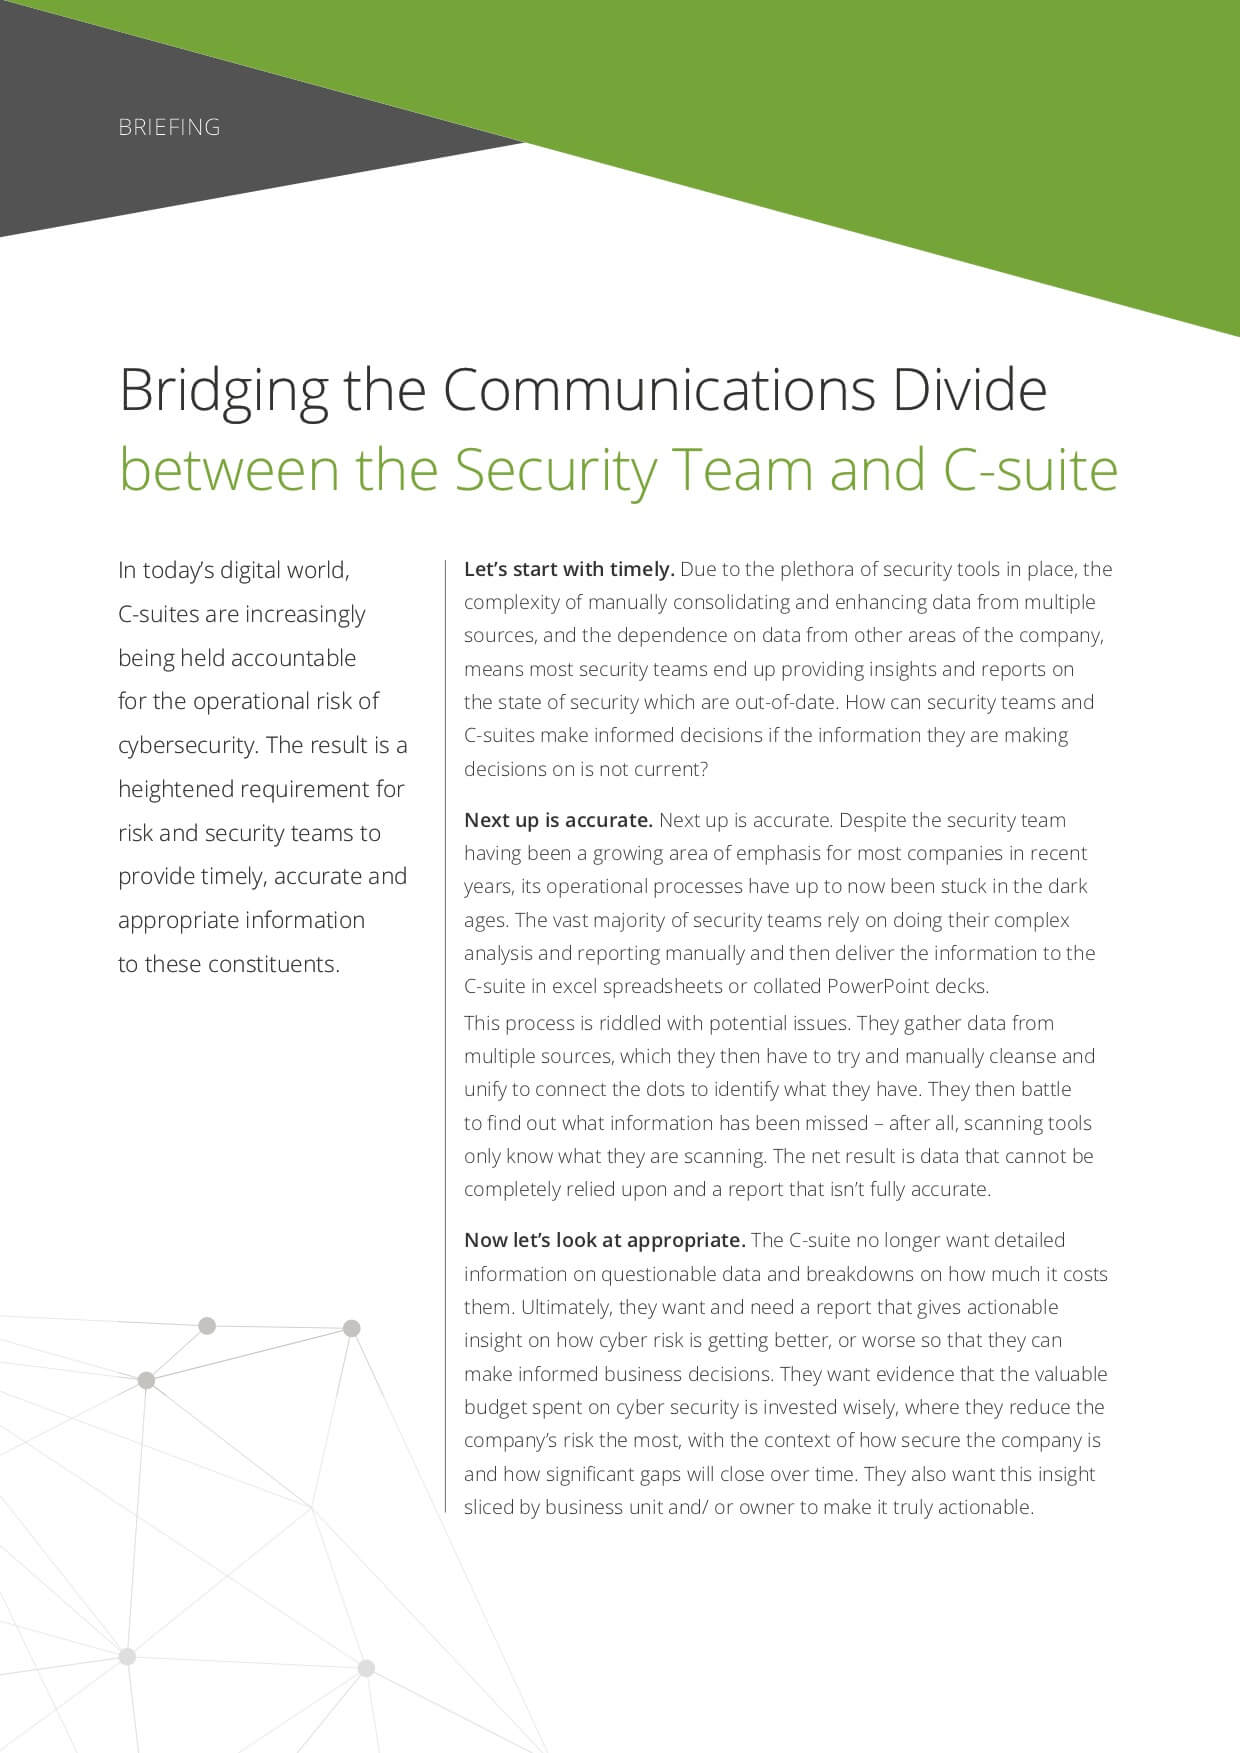 Briefing: Bridging the Comms Divide between the Security Team and C-suite